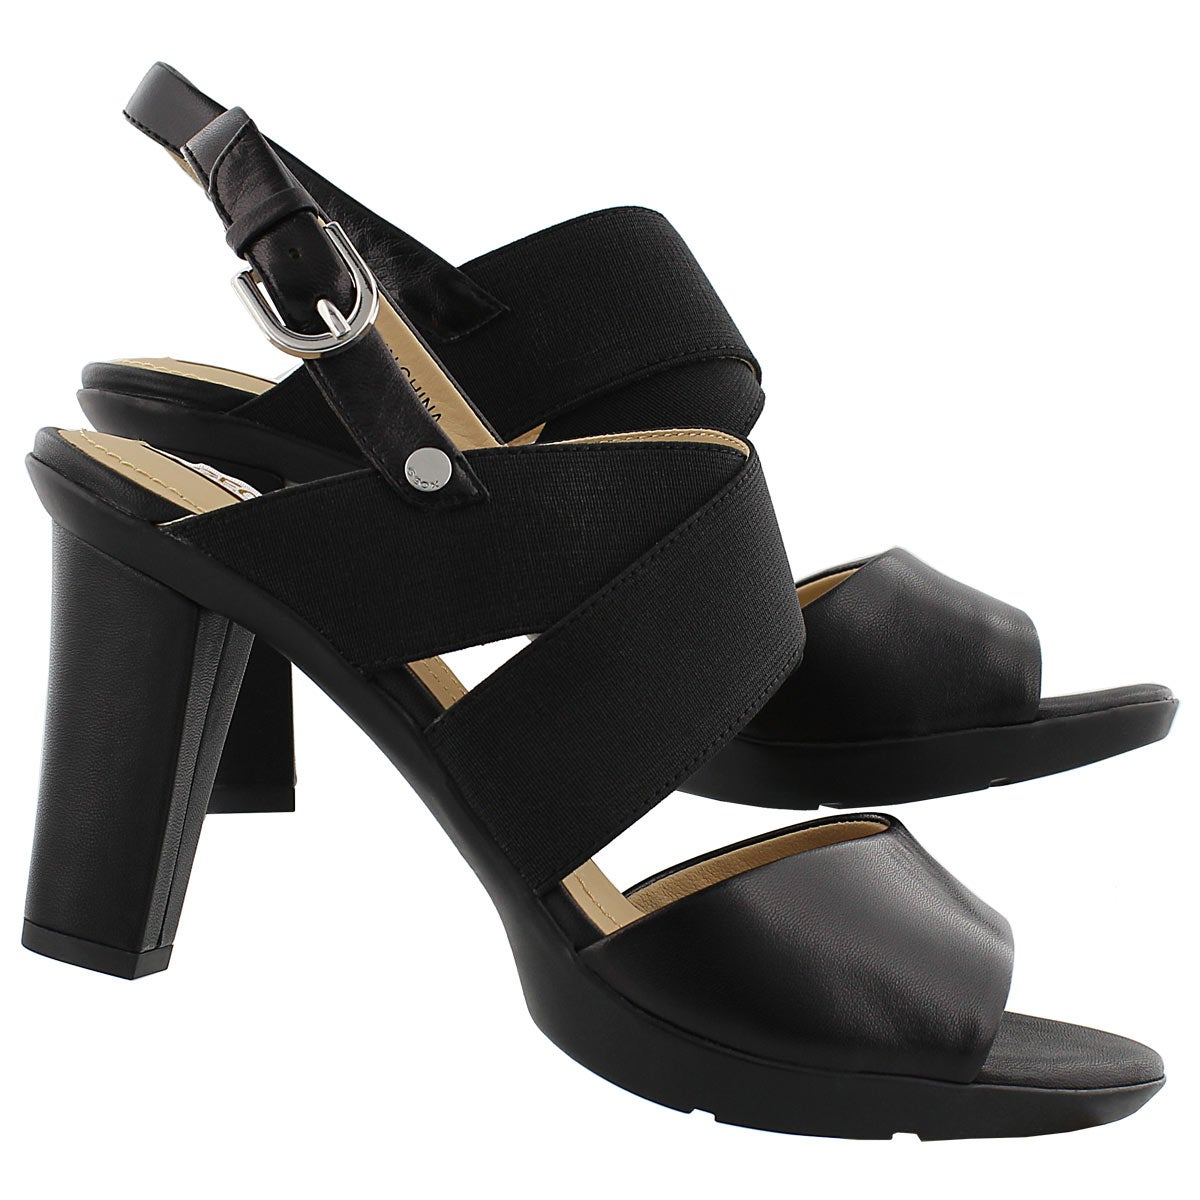 Lds Jadalis black dress sandal